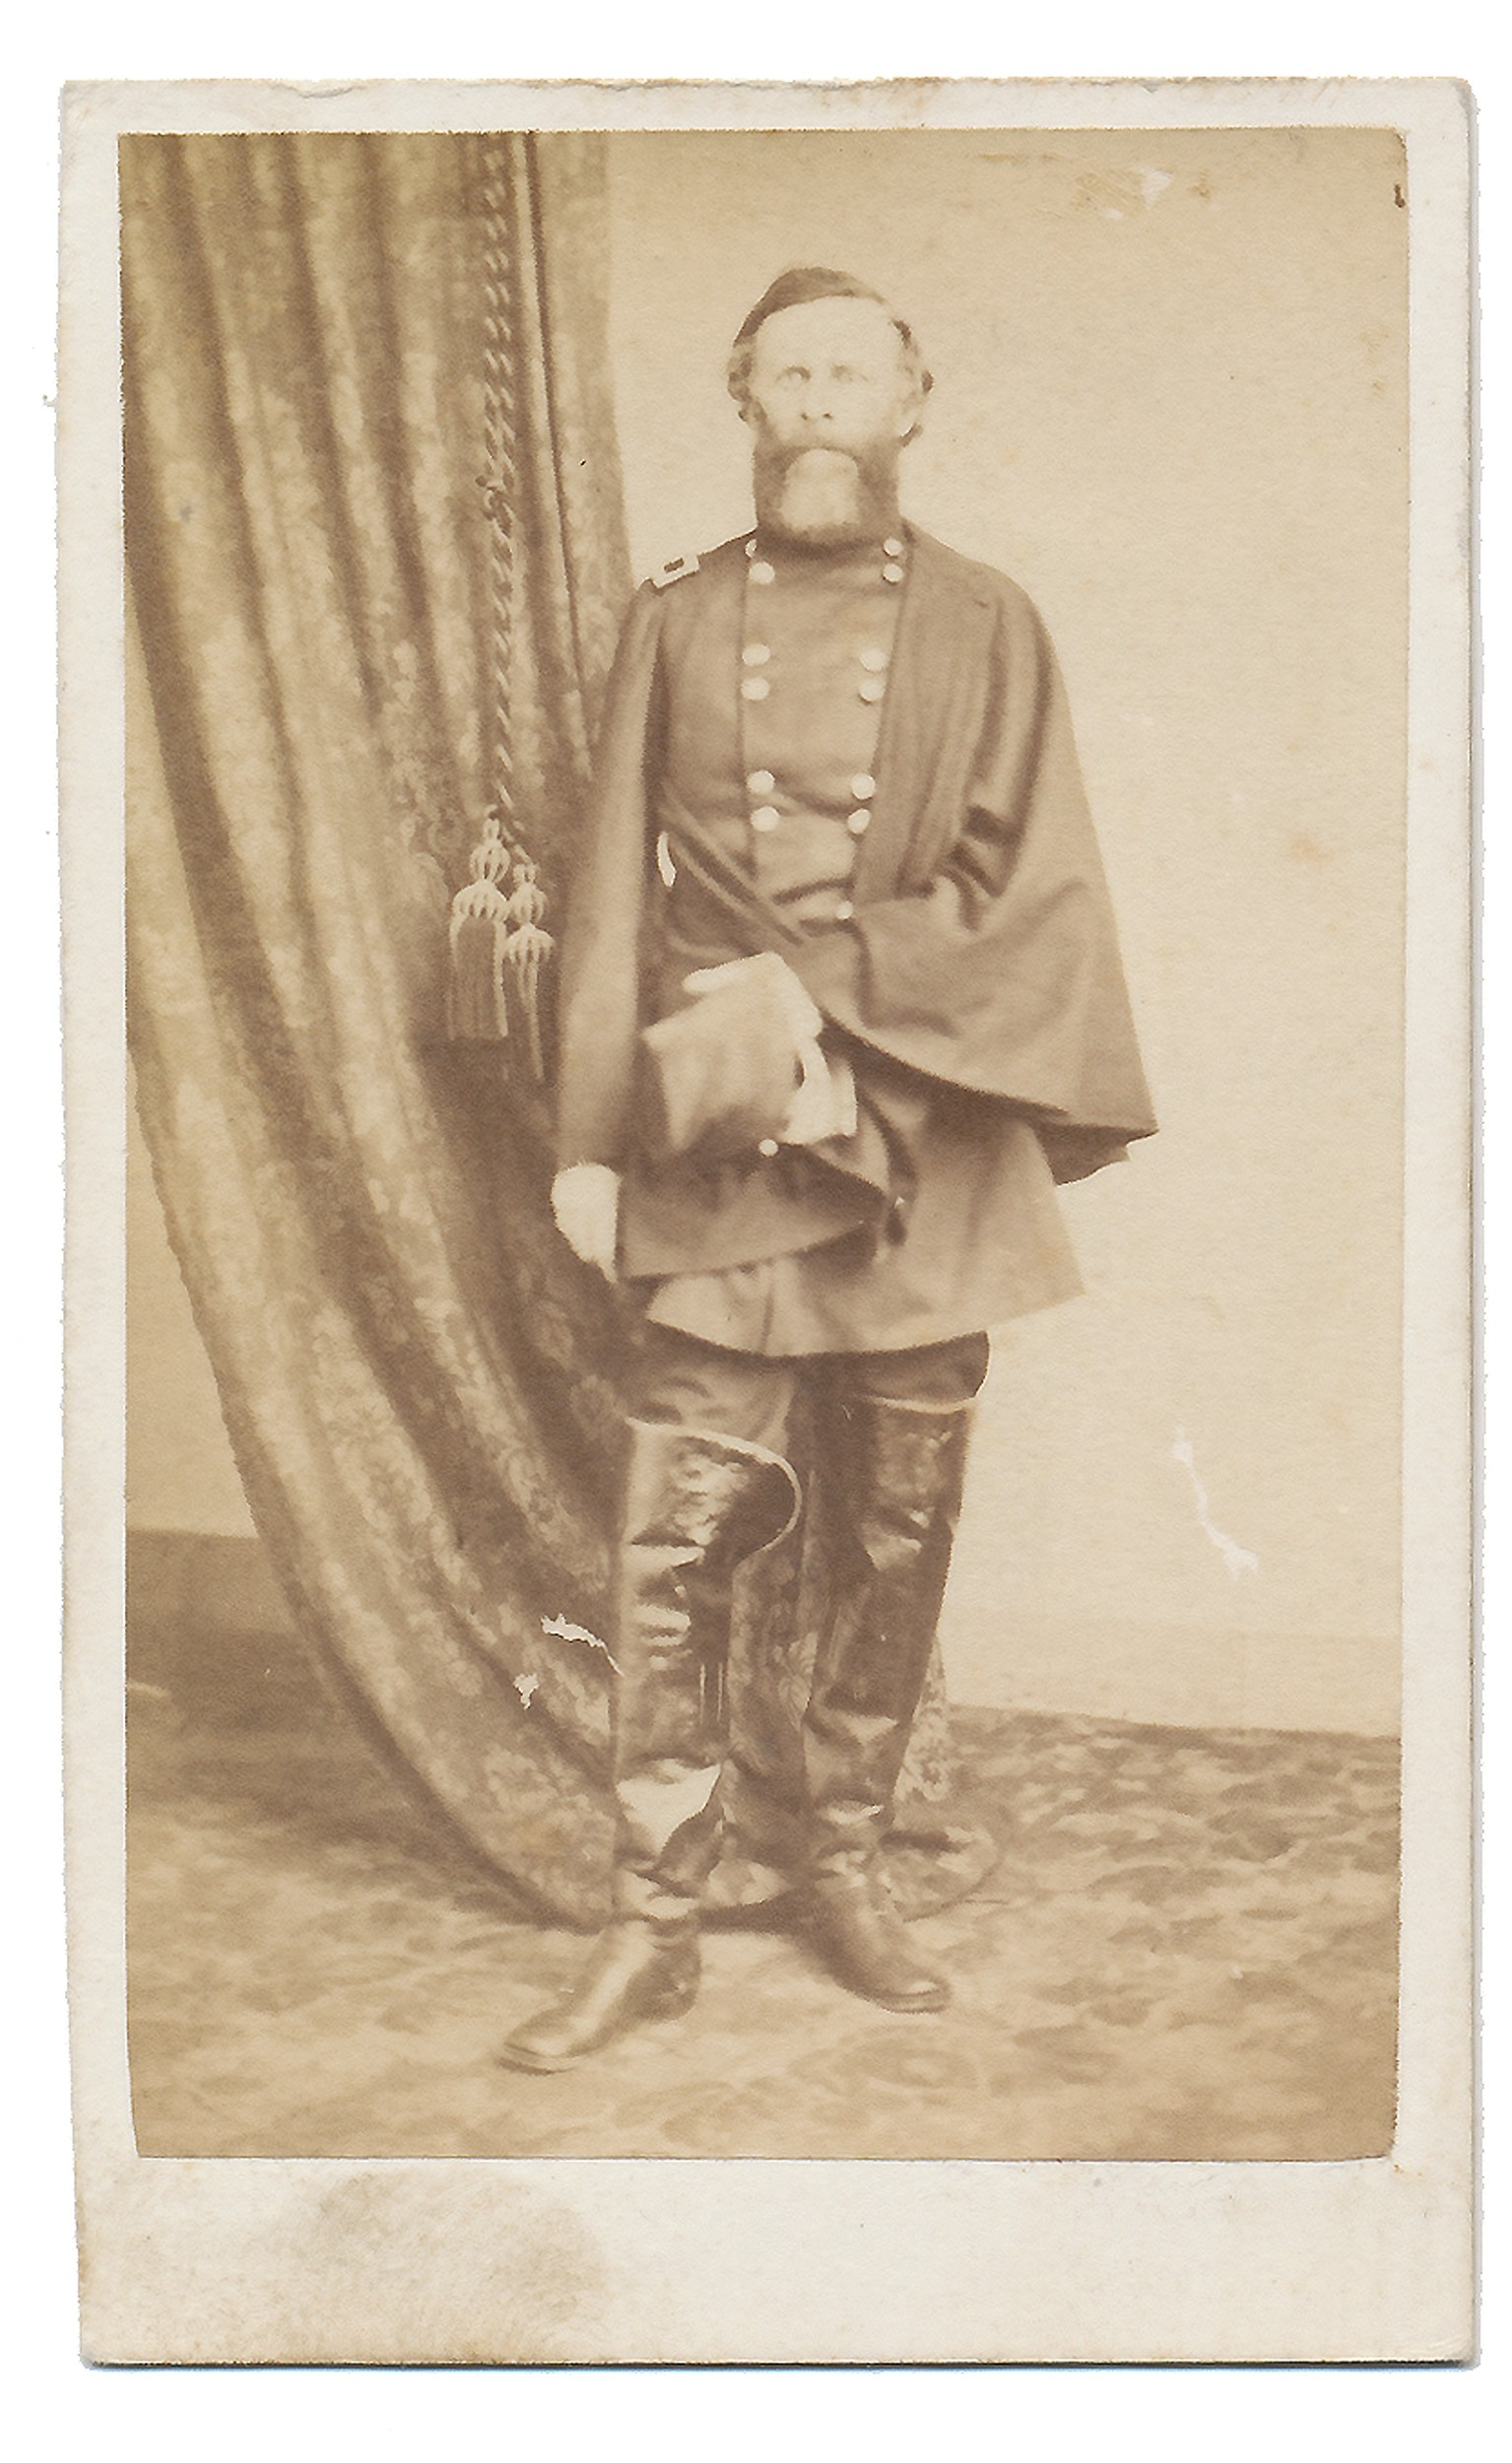 FULL STANDING CDV OF GENERAL PHILIP ST. GEORGE COOKE - JEB STUART'S FATHER-IN-LAW